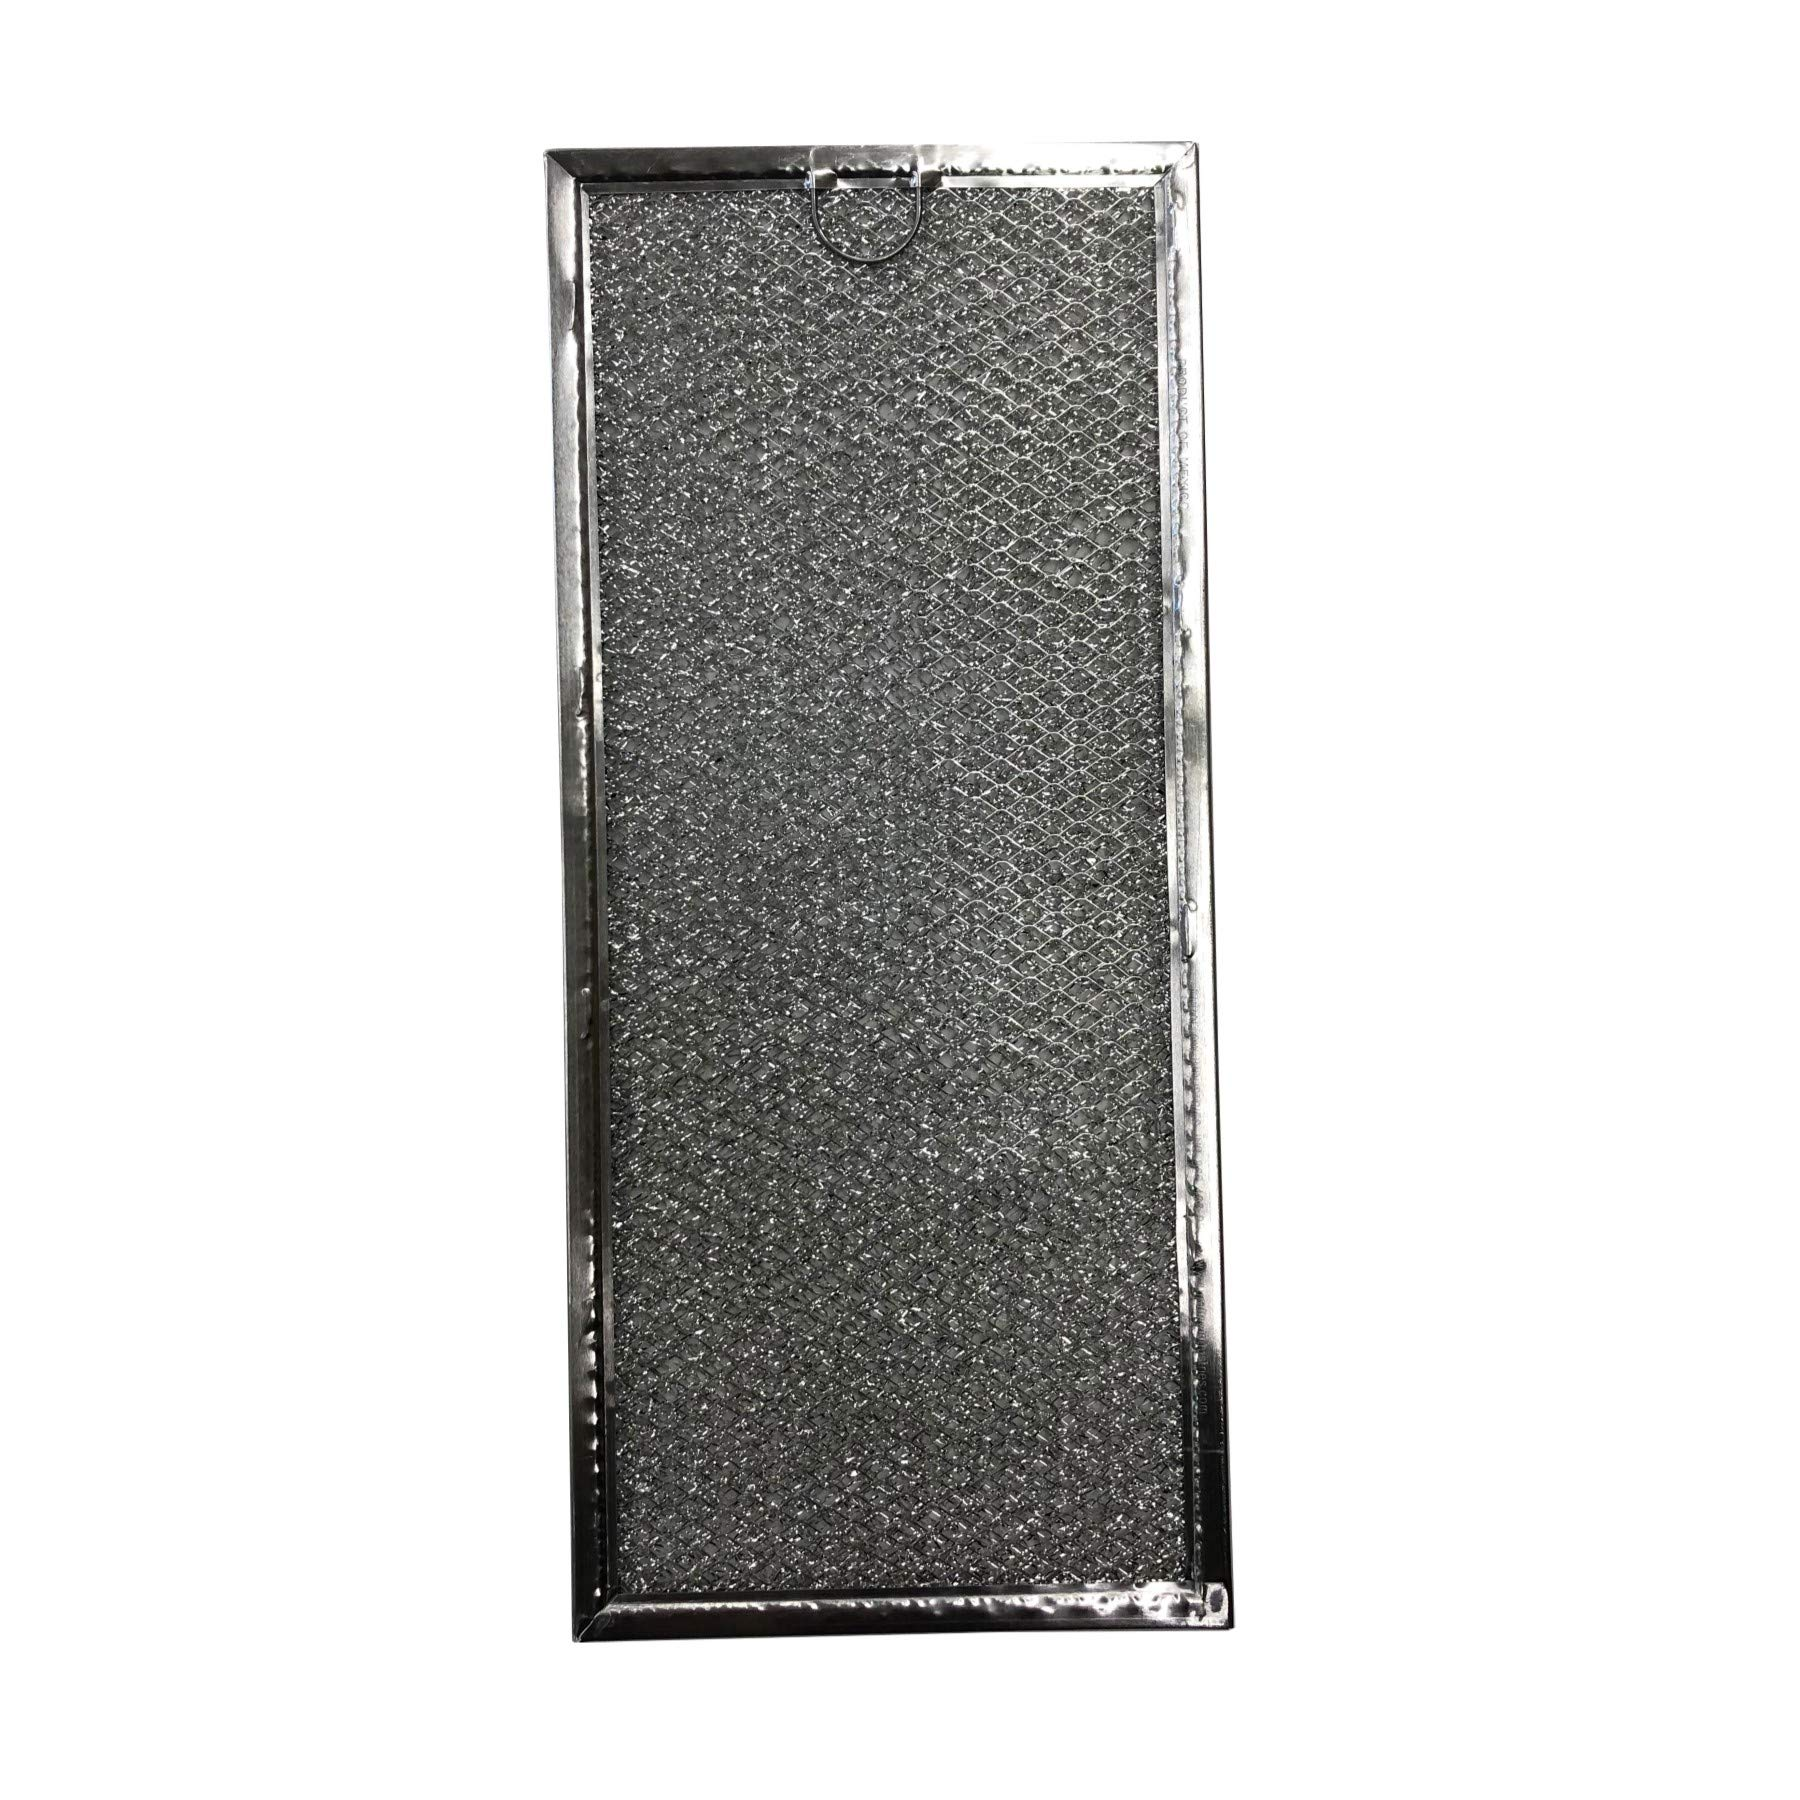 Replacement Aluminum Range Filter Compatible With Many Amana, Kitchenaid, and Whirpool Models   6 1/